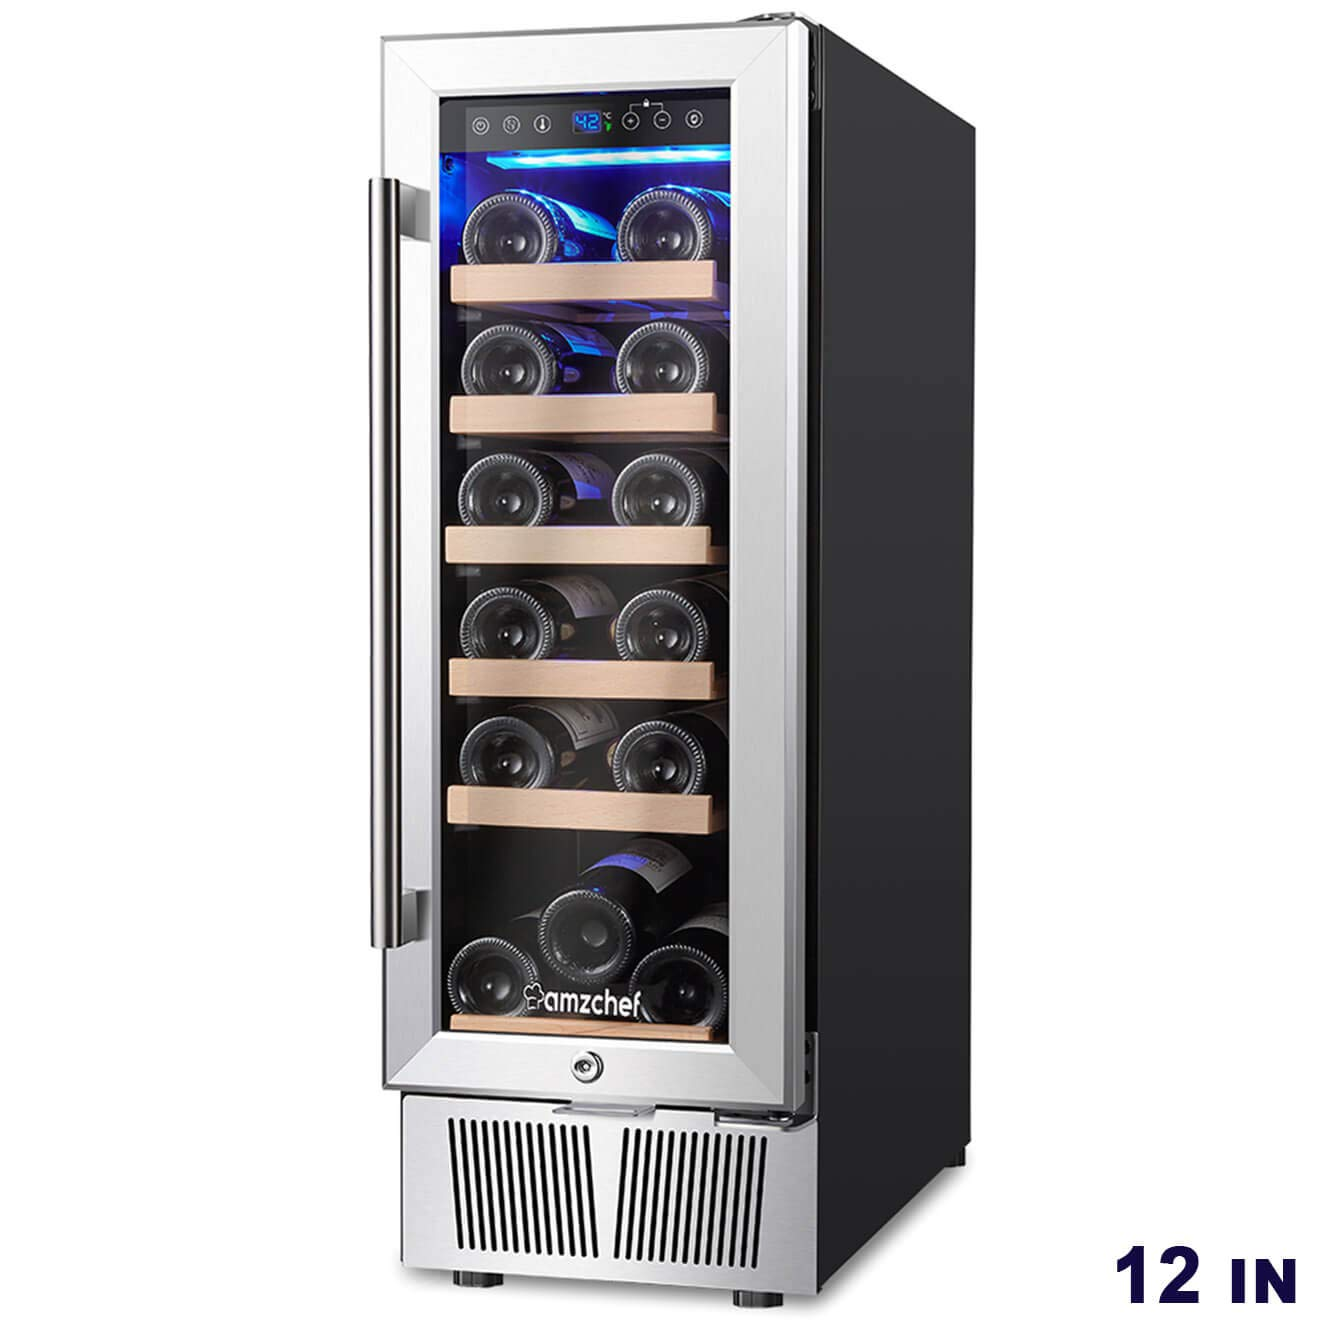 AMZCHEF 12'' Wine Cooler, Wine Refrigerator Built-in or freestanding Quiet & Constant Temperature by BODEGA